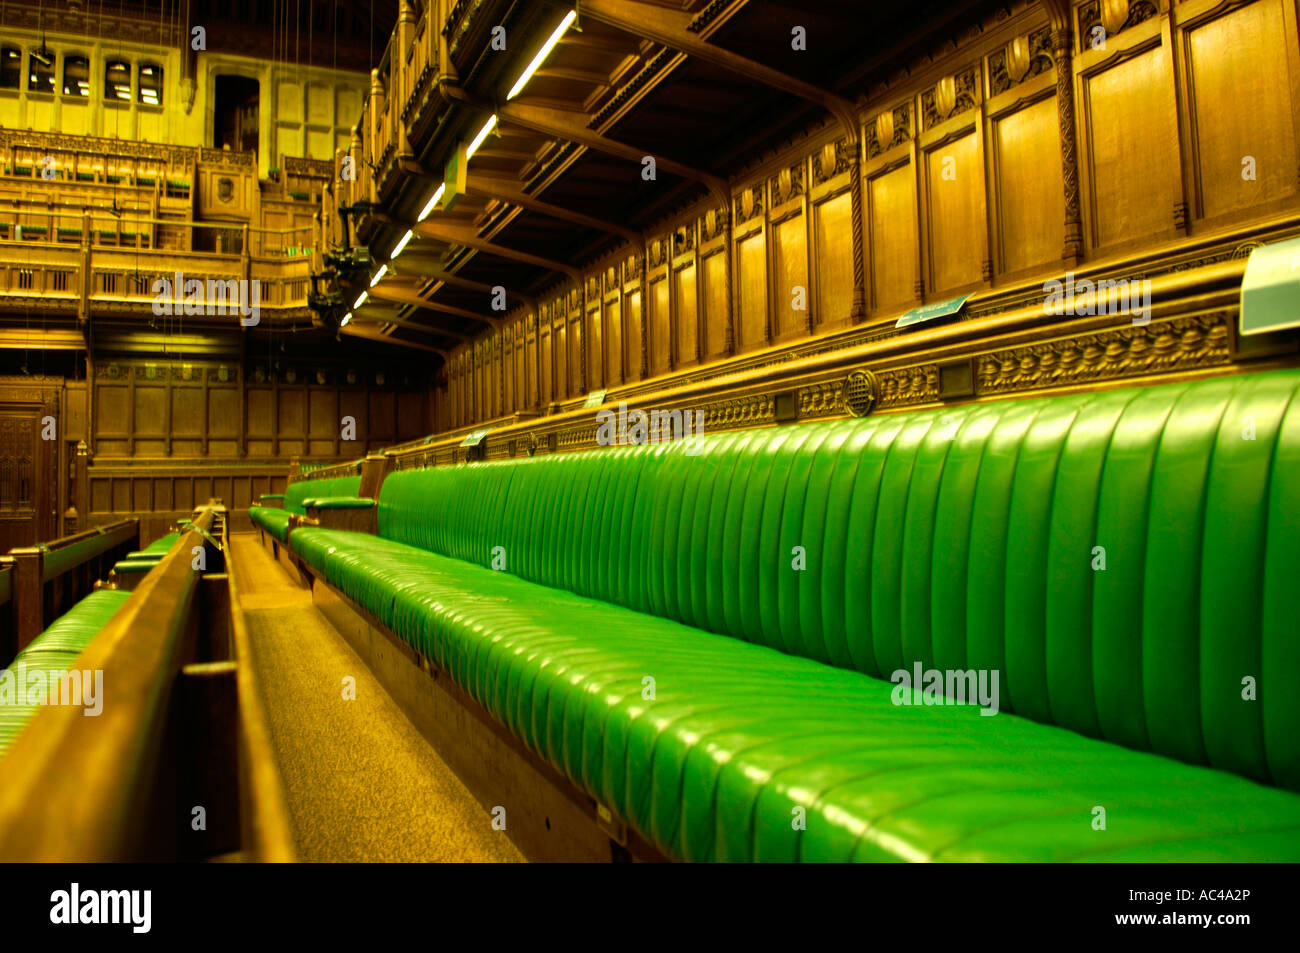 green-benches-leather-the-palace-of-west